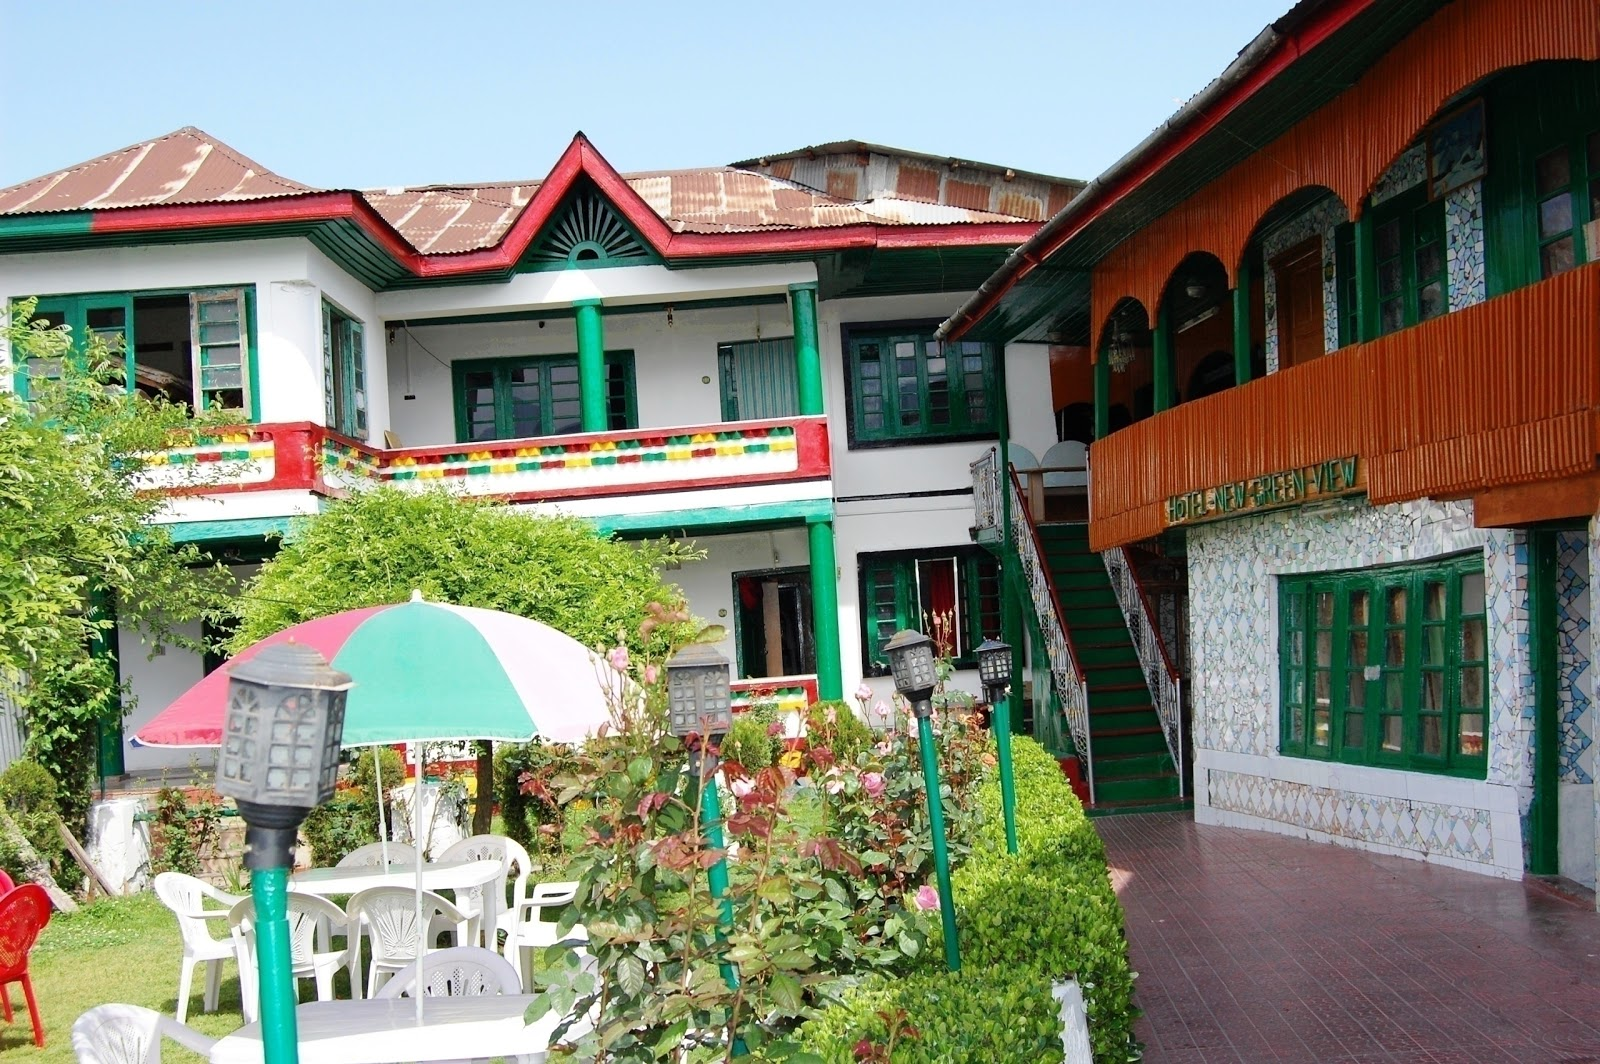 Hotel New Green View Hb Mughal Sheraton Group Of House Boats Around Guides